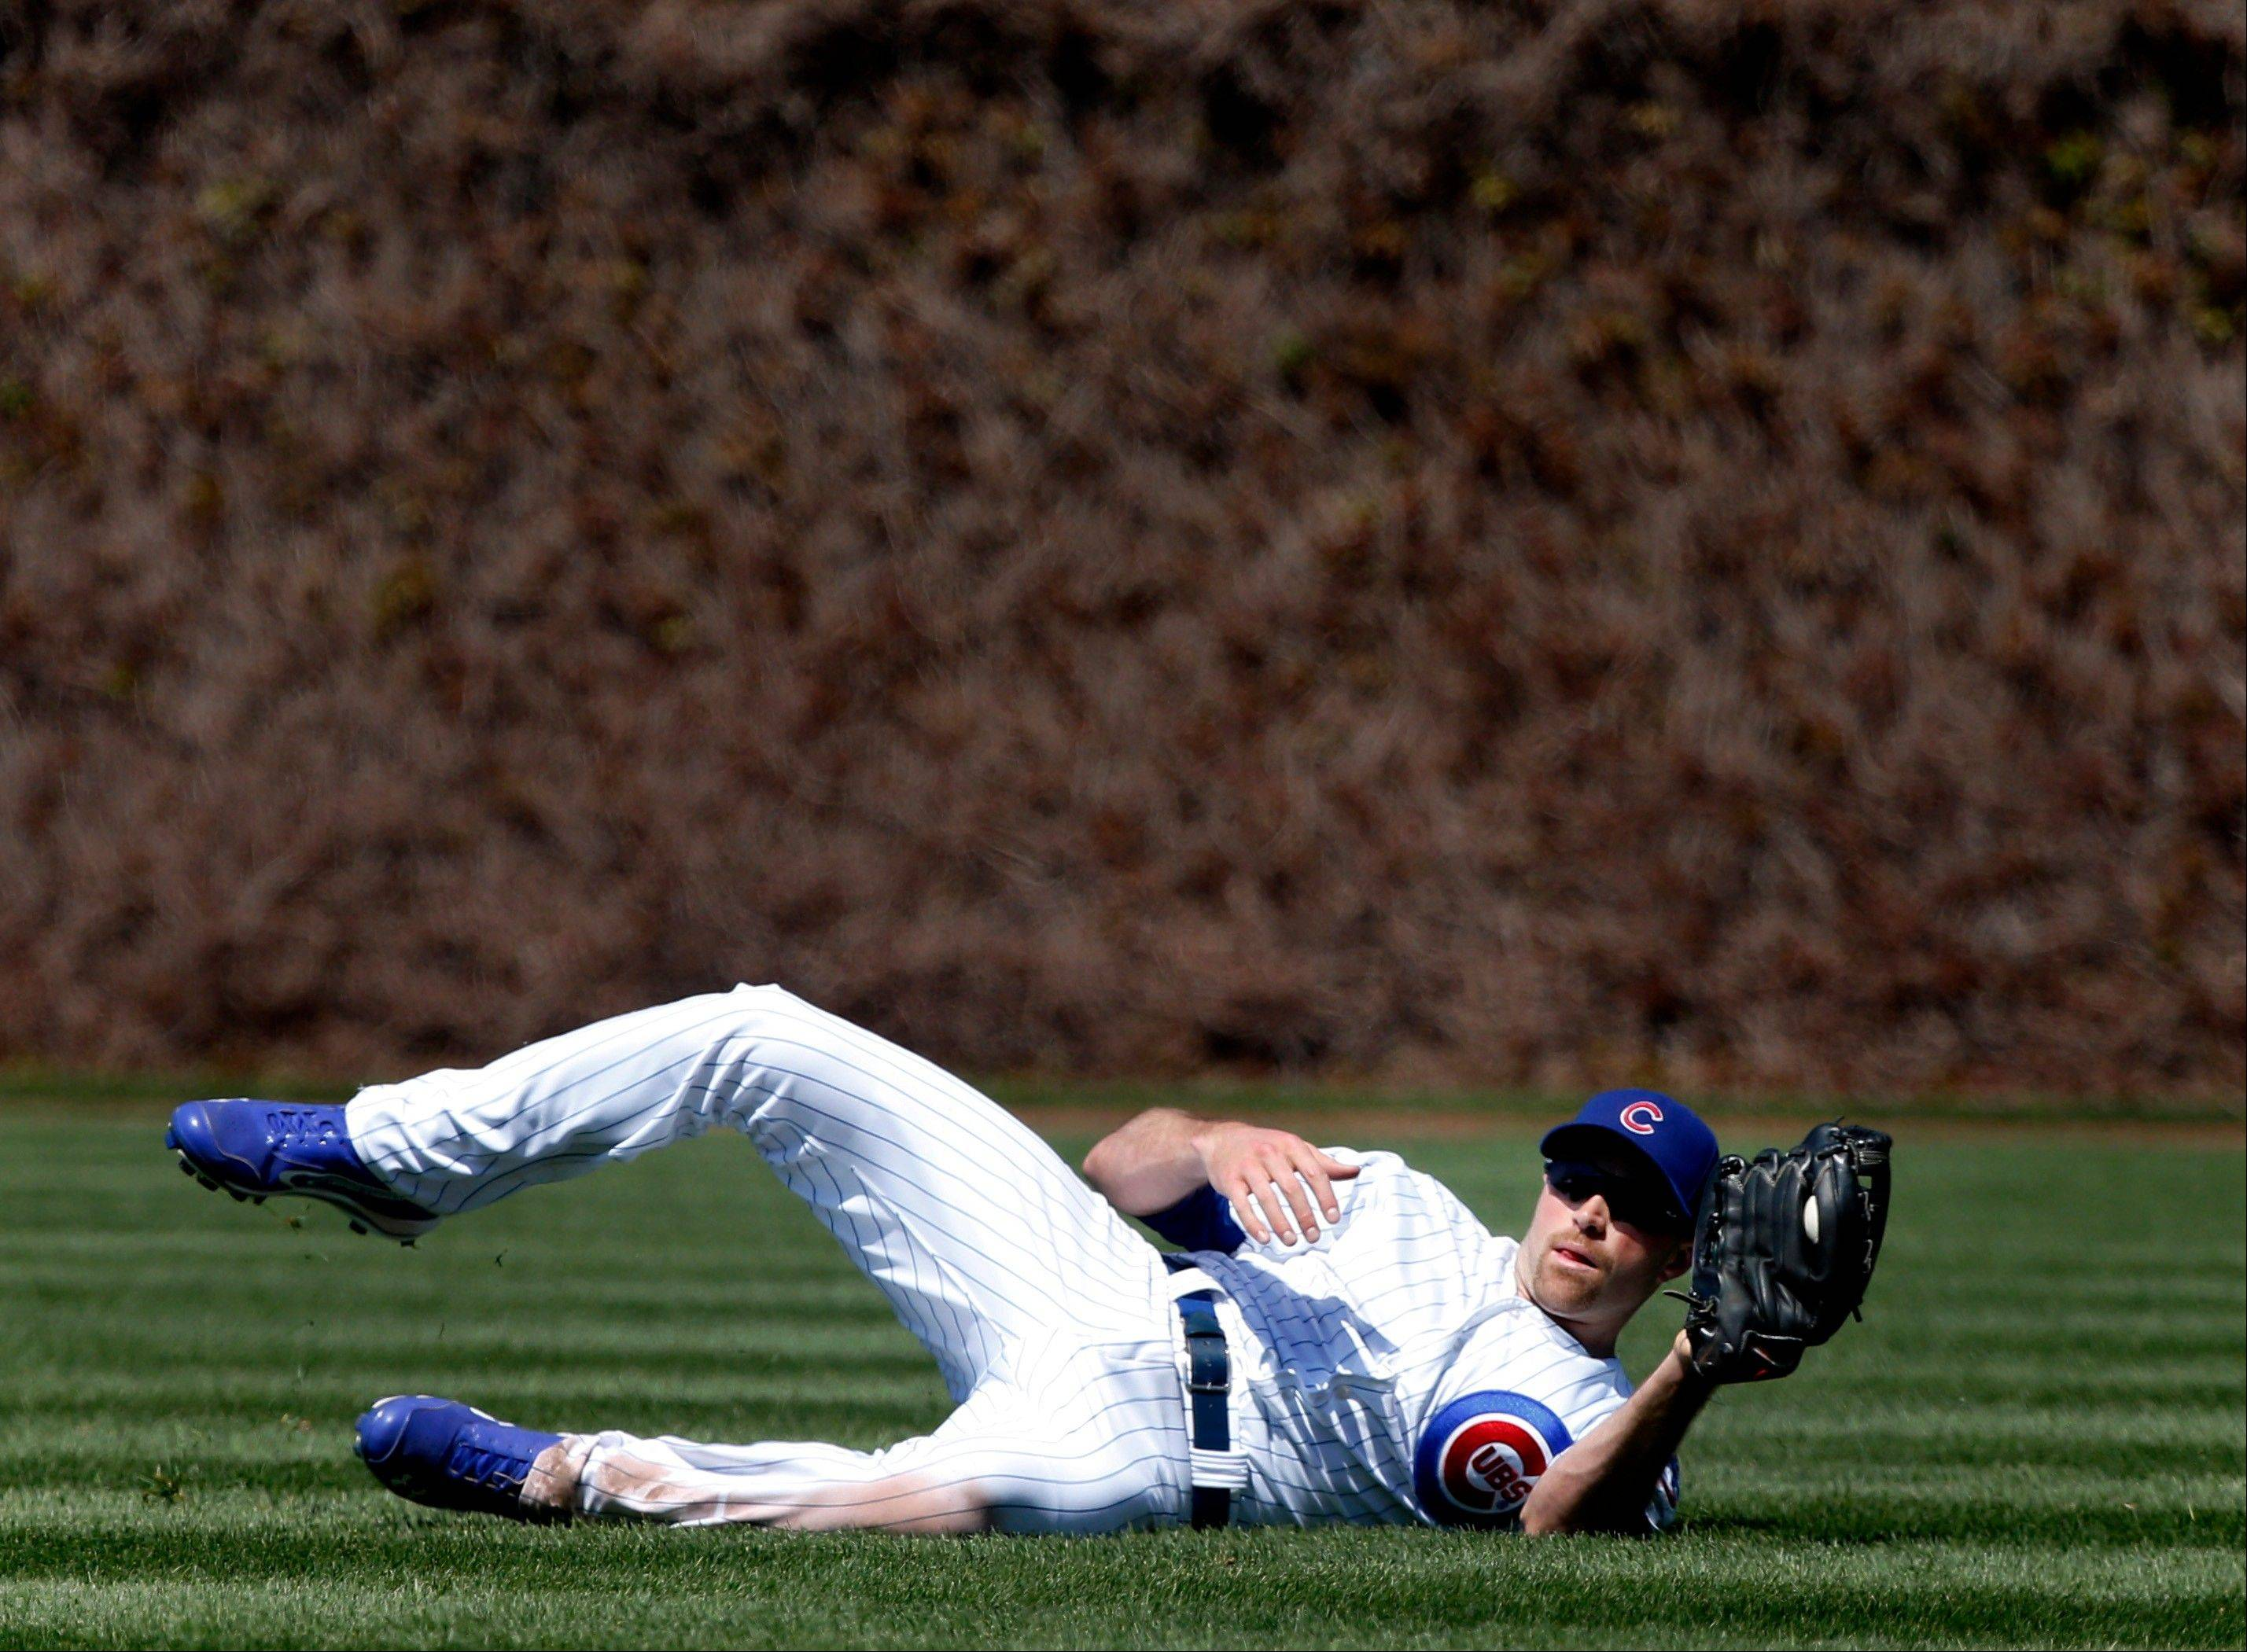 Nate Schierholtz makes a sliding catch of a shallow flyball hit by Allen Craig in the fifth inning of the Cubs' loss Wednesday.